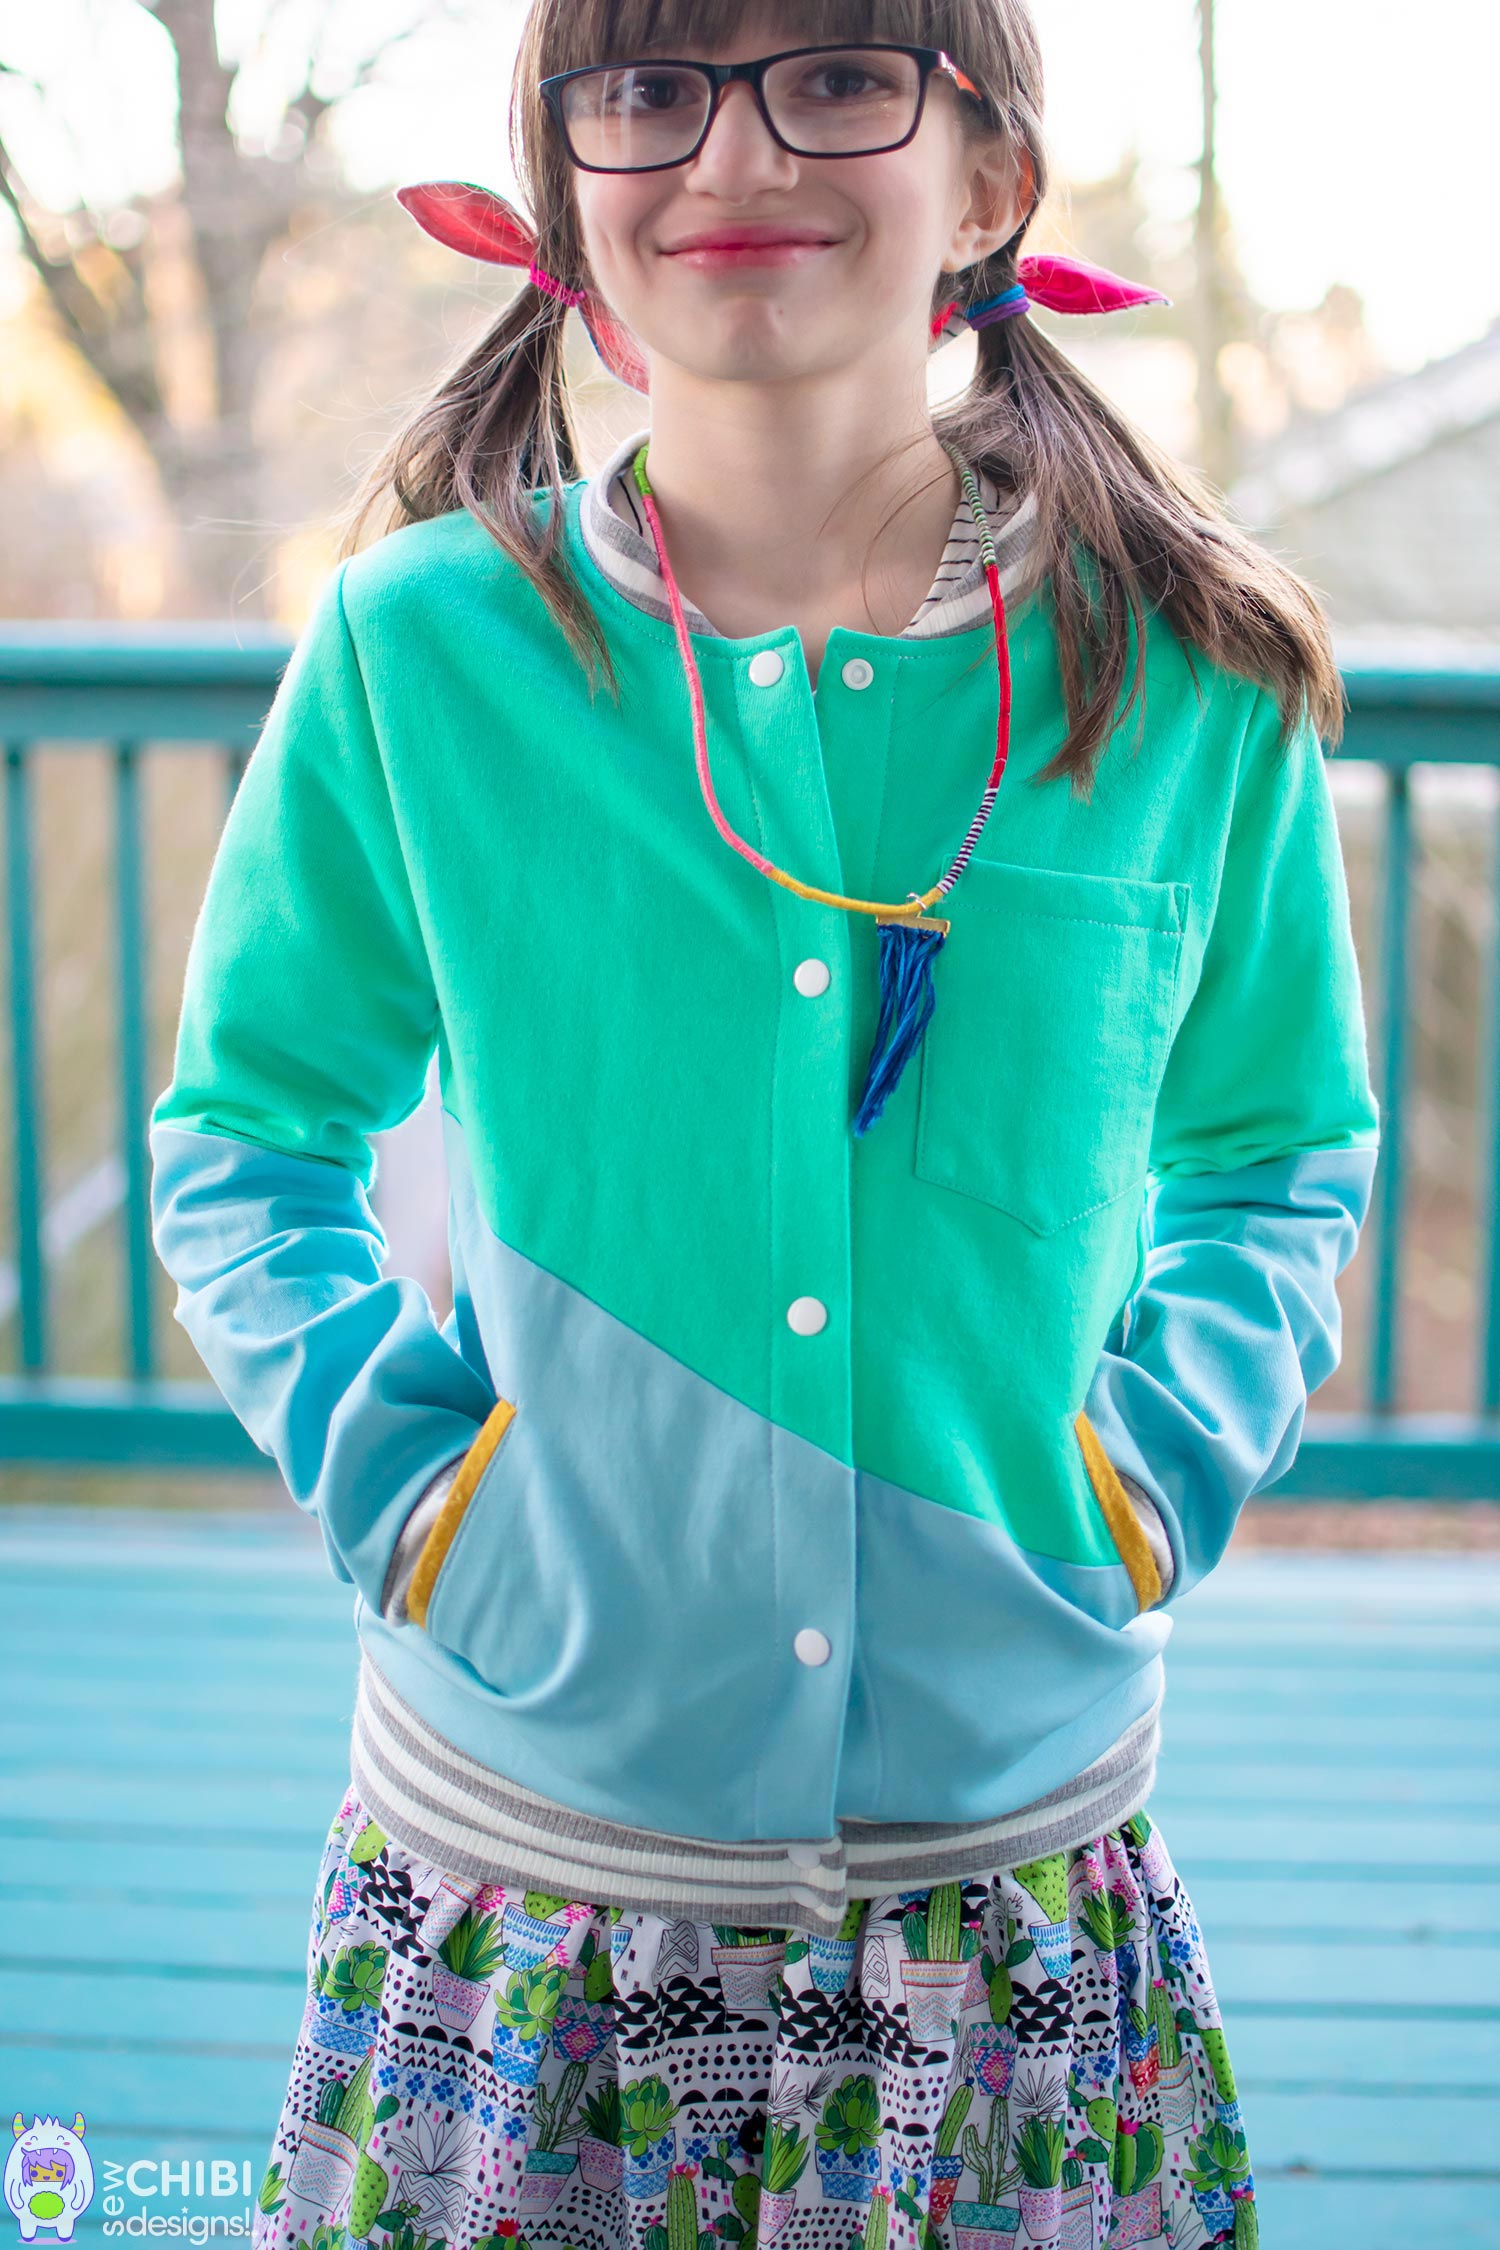 Ichigo Bomber Jacket - • Color-blocked wave effect• Easy welt pockets• Fun applique' back with Hiragana and English lettering• Chest pocket• For boys & girls ages 12M- 16Y!